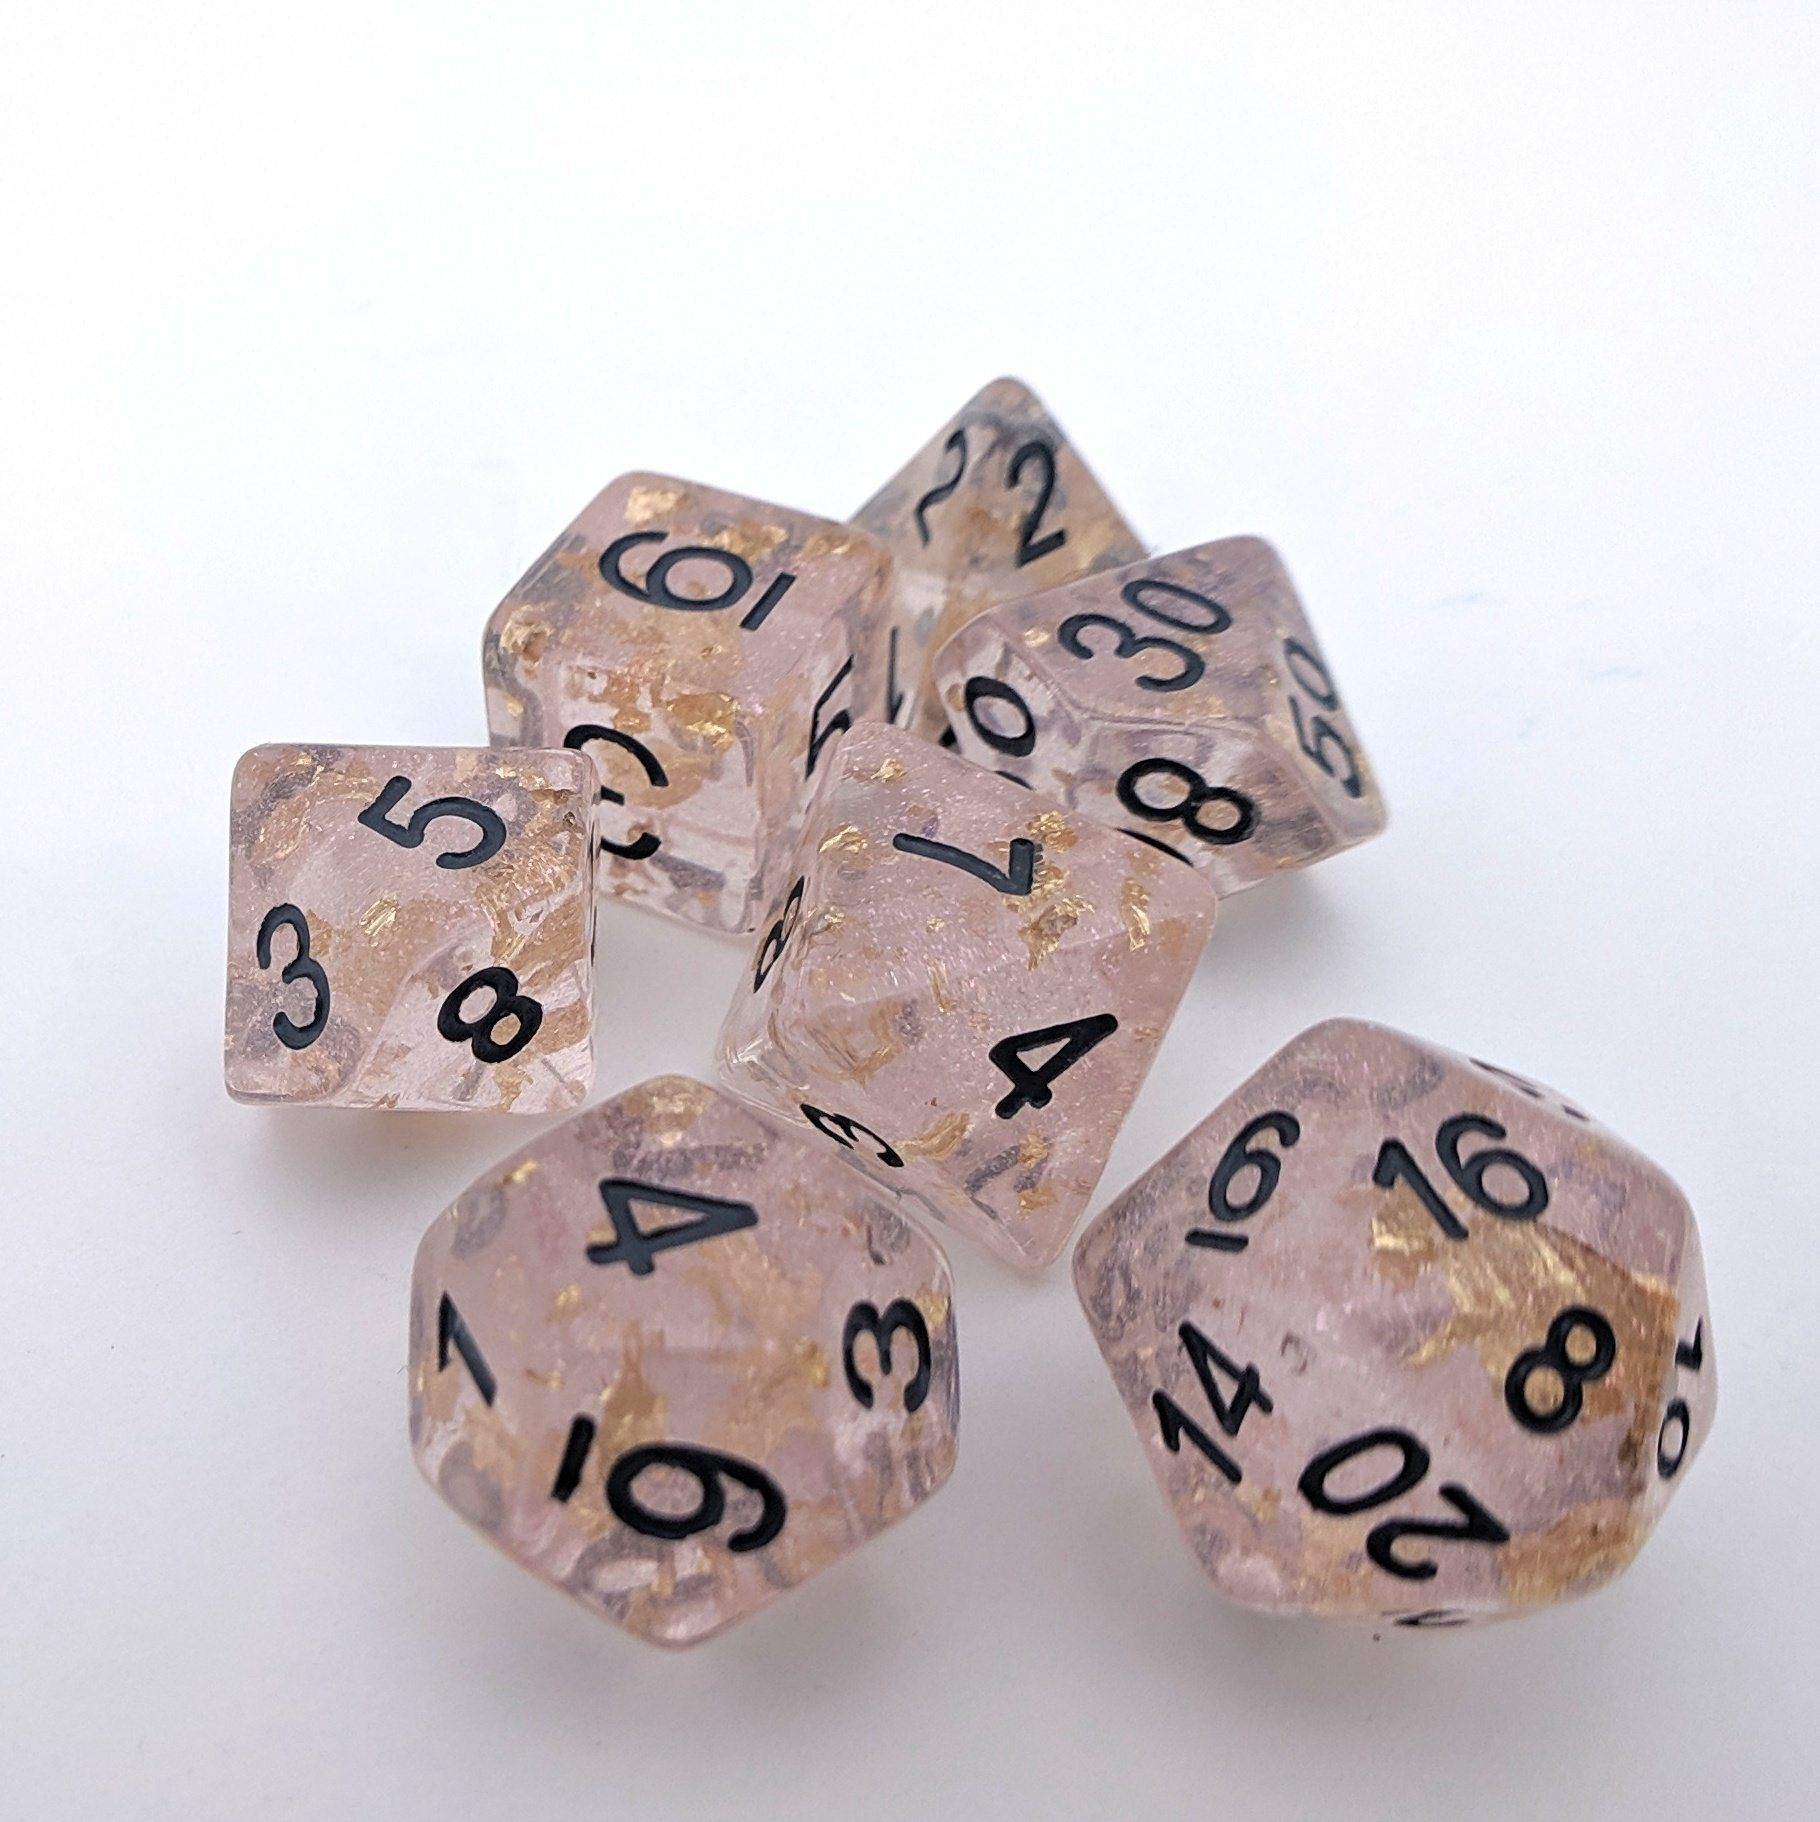 Rose Scepter DnD Dice Set, Pink Translucent Glitter Dice with Gold Foil